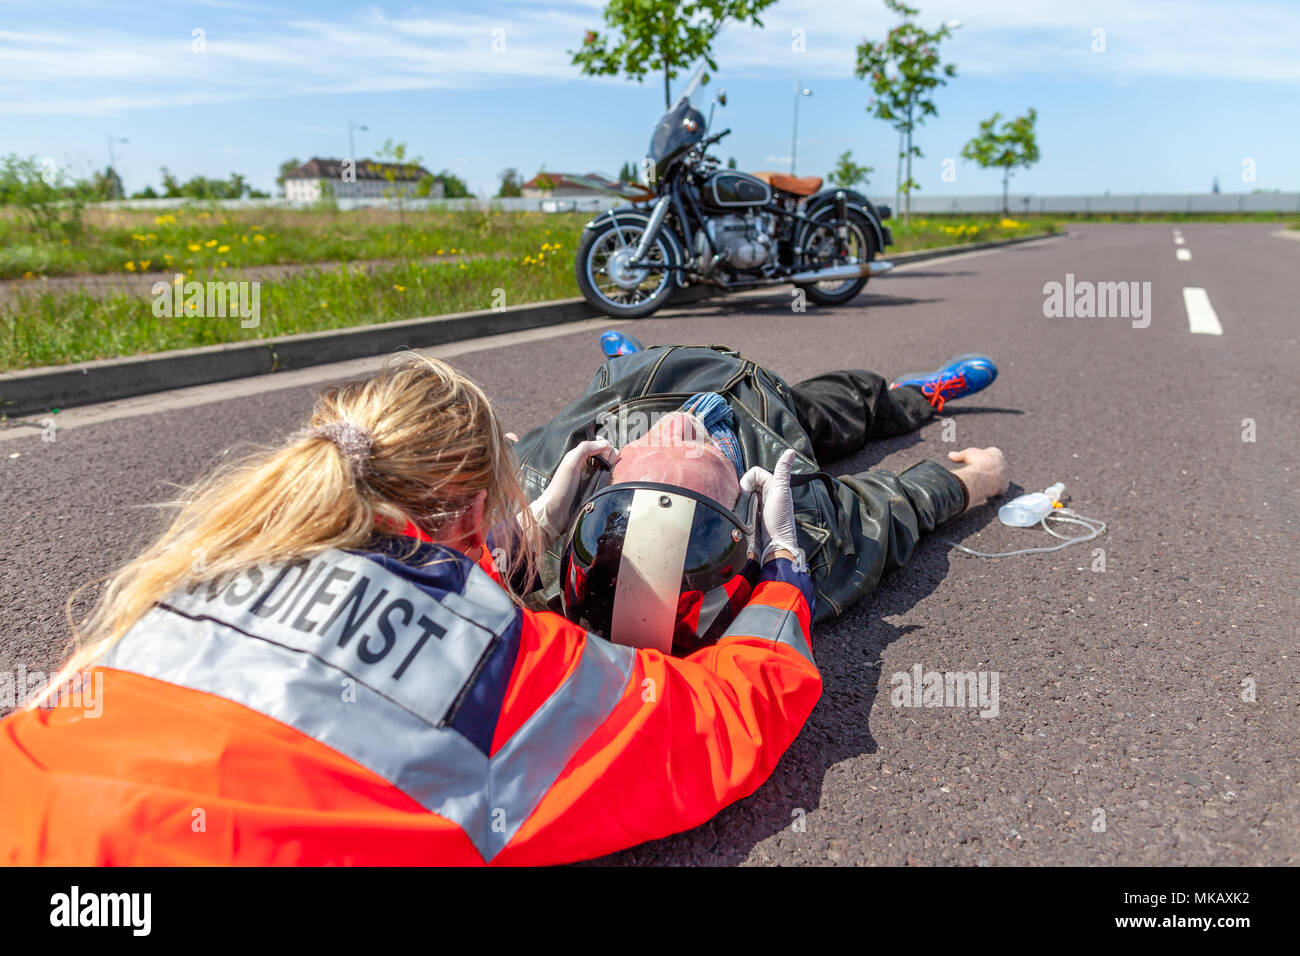 Motorcycle Crash Victim Stock Photos & Motorcycle Crash ...